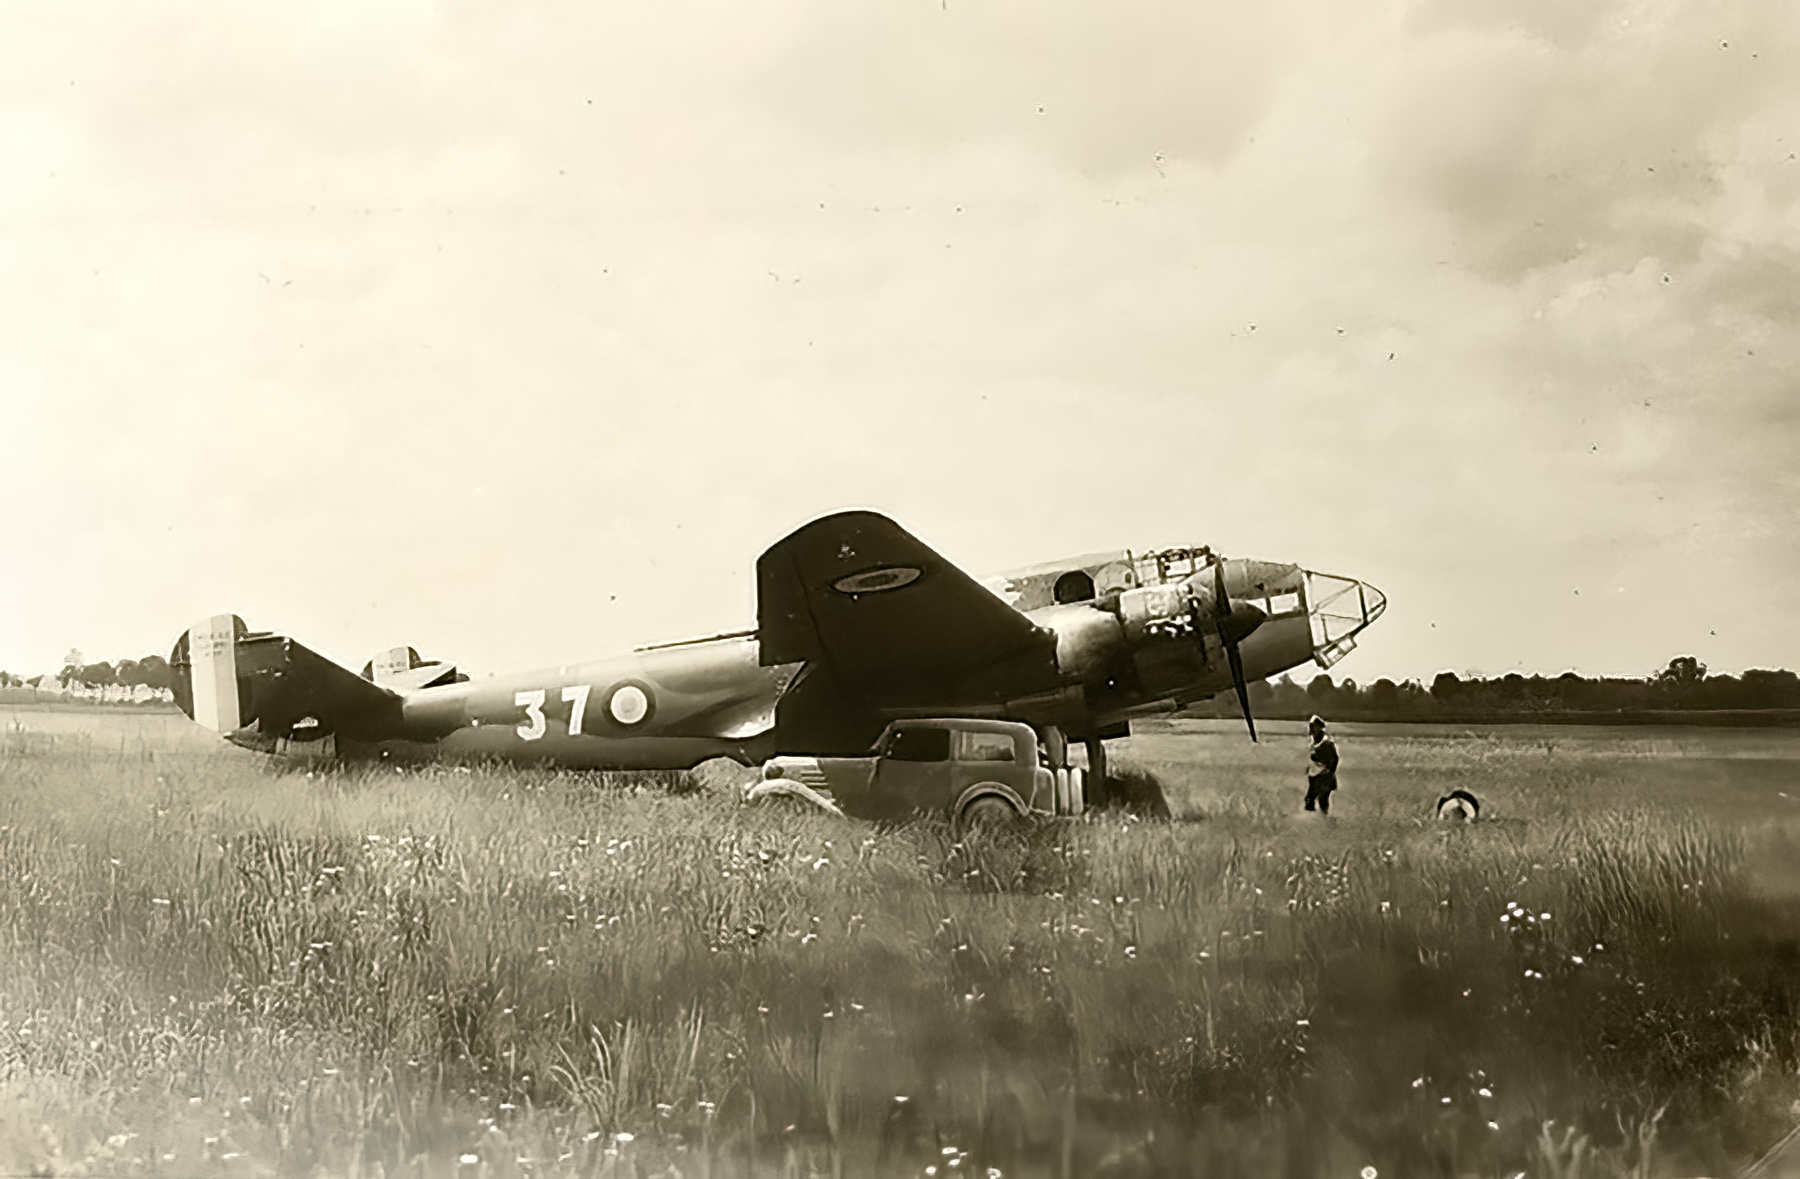 French Airforce Liore et Olivier LeO 451 White 37 abandoned France May Jun 1940 ebay 01